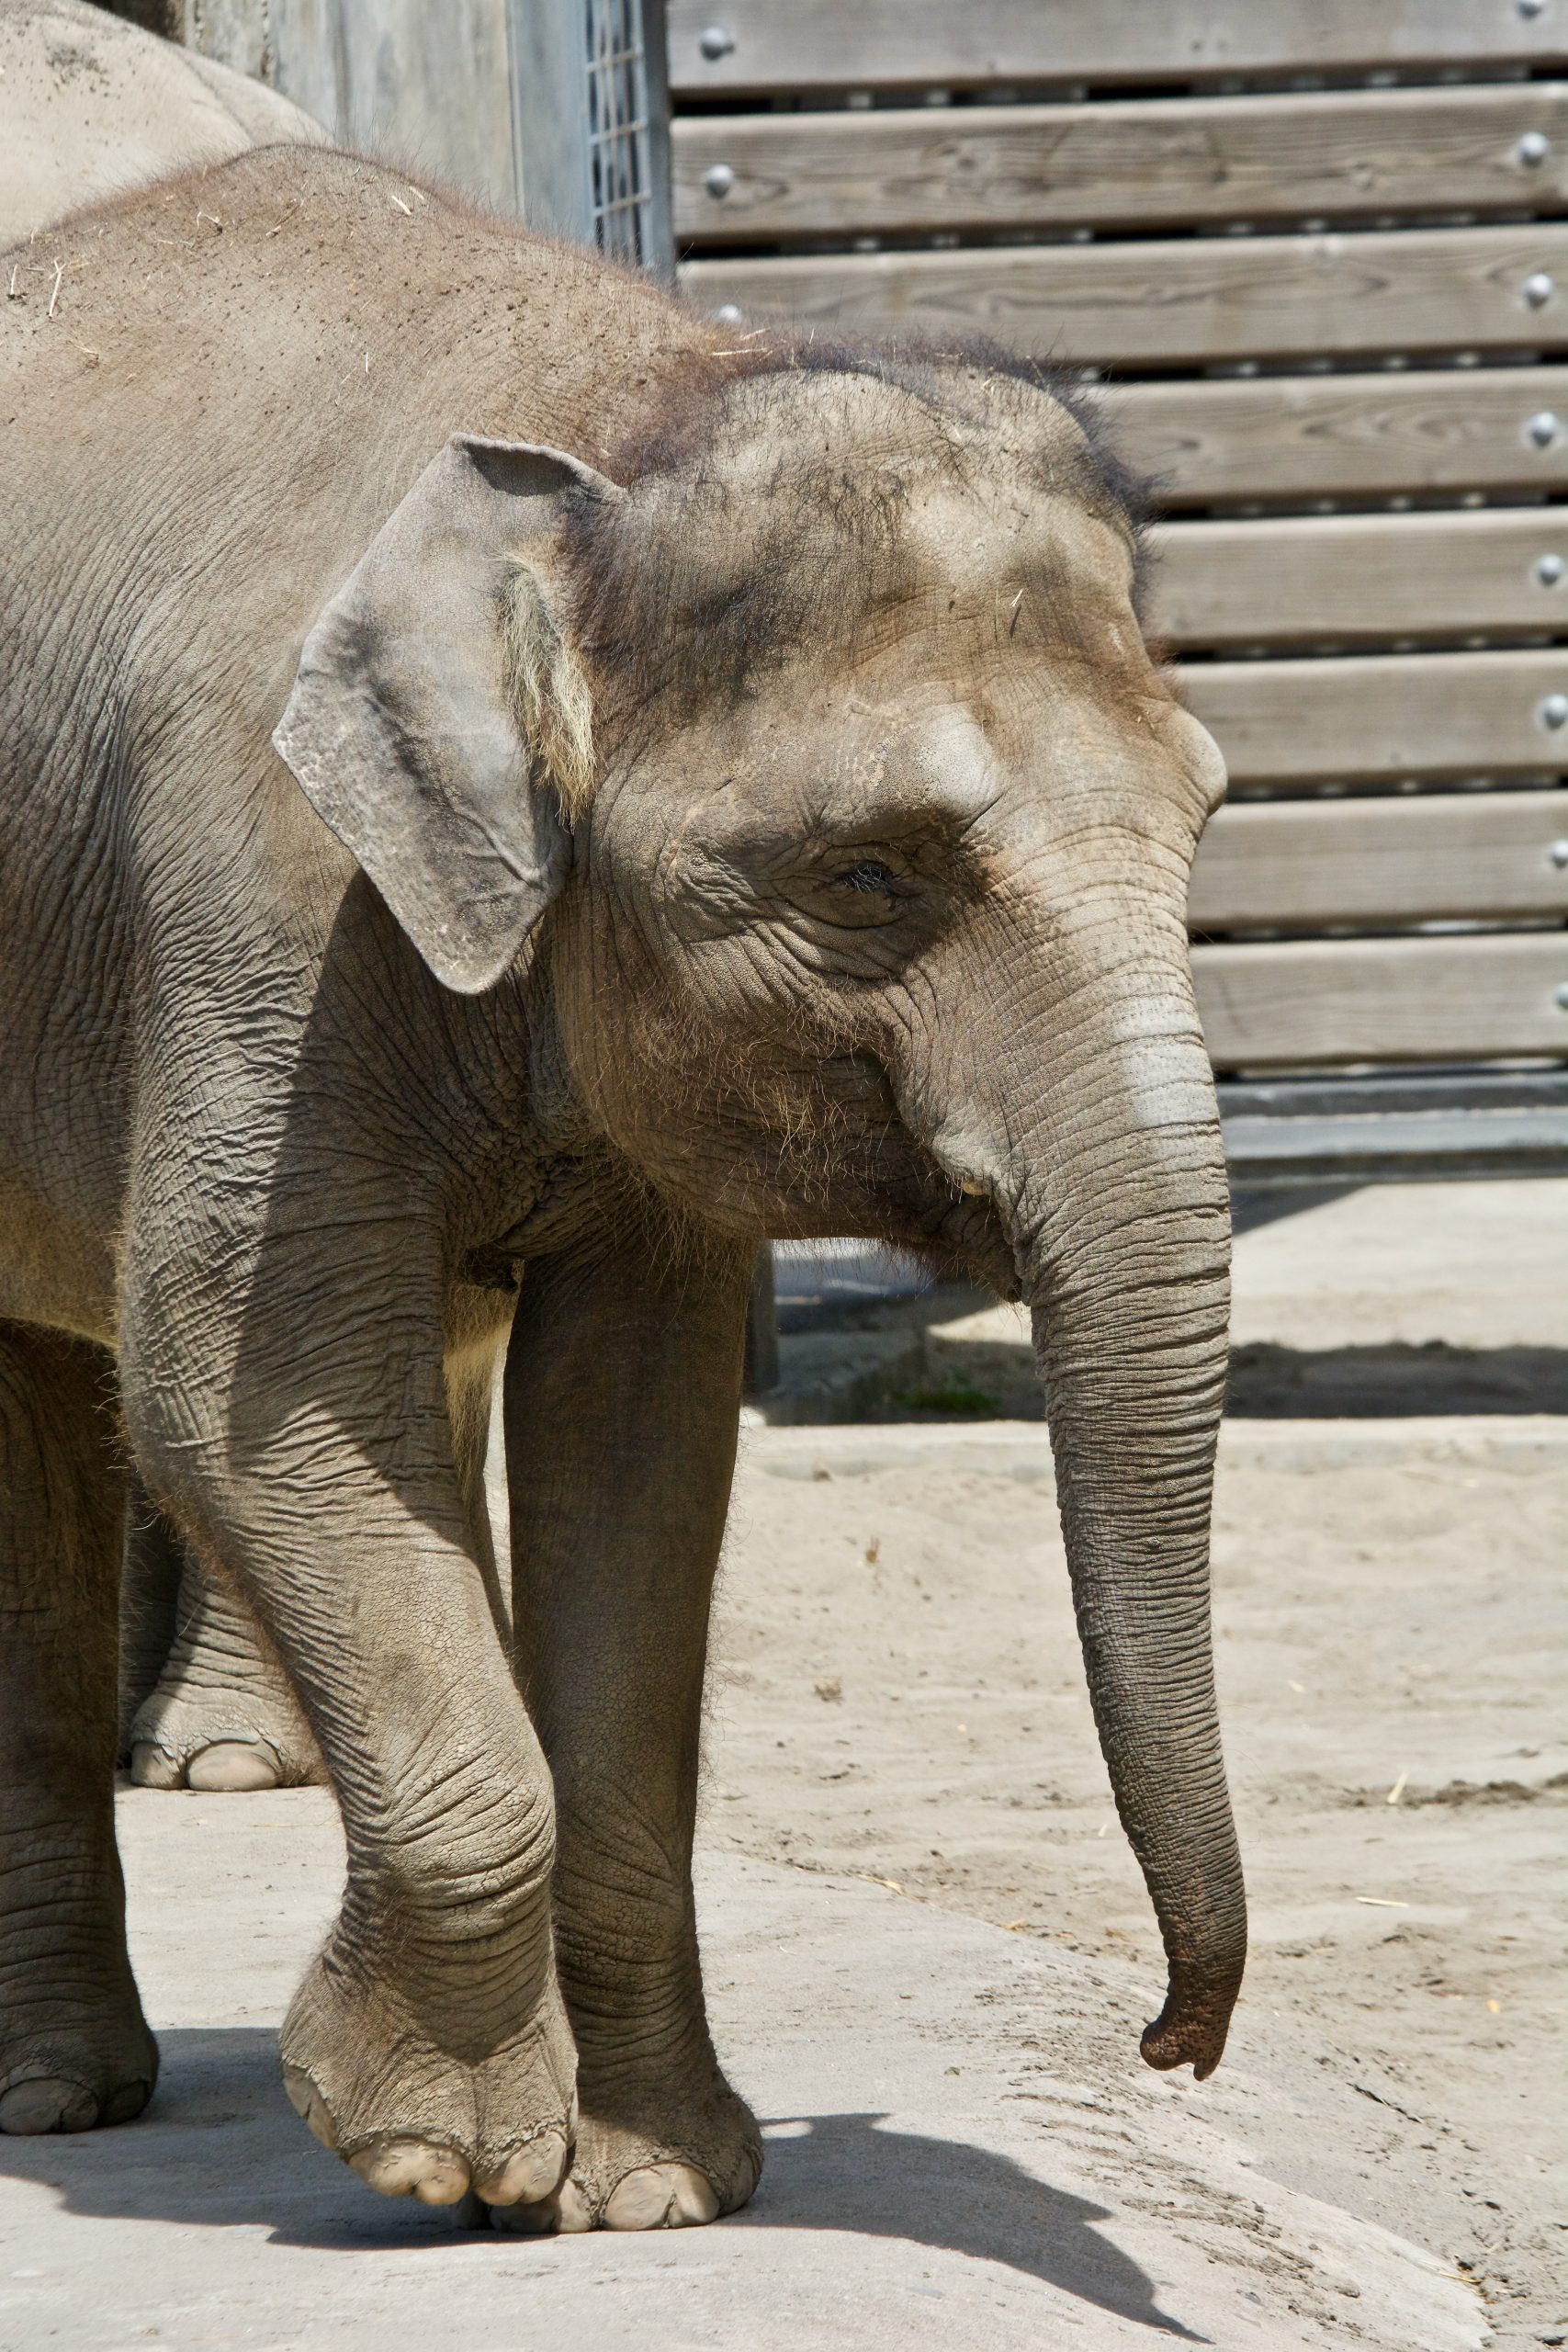 Petition: Zoos and Aquariums Must Help Stop Zoonotic Diseases that Kill Millions of People Annually!